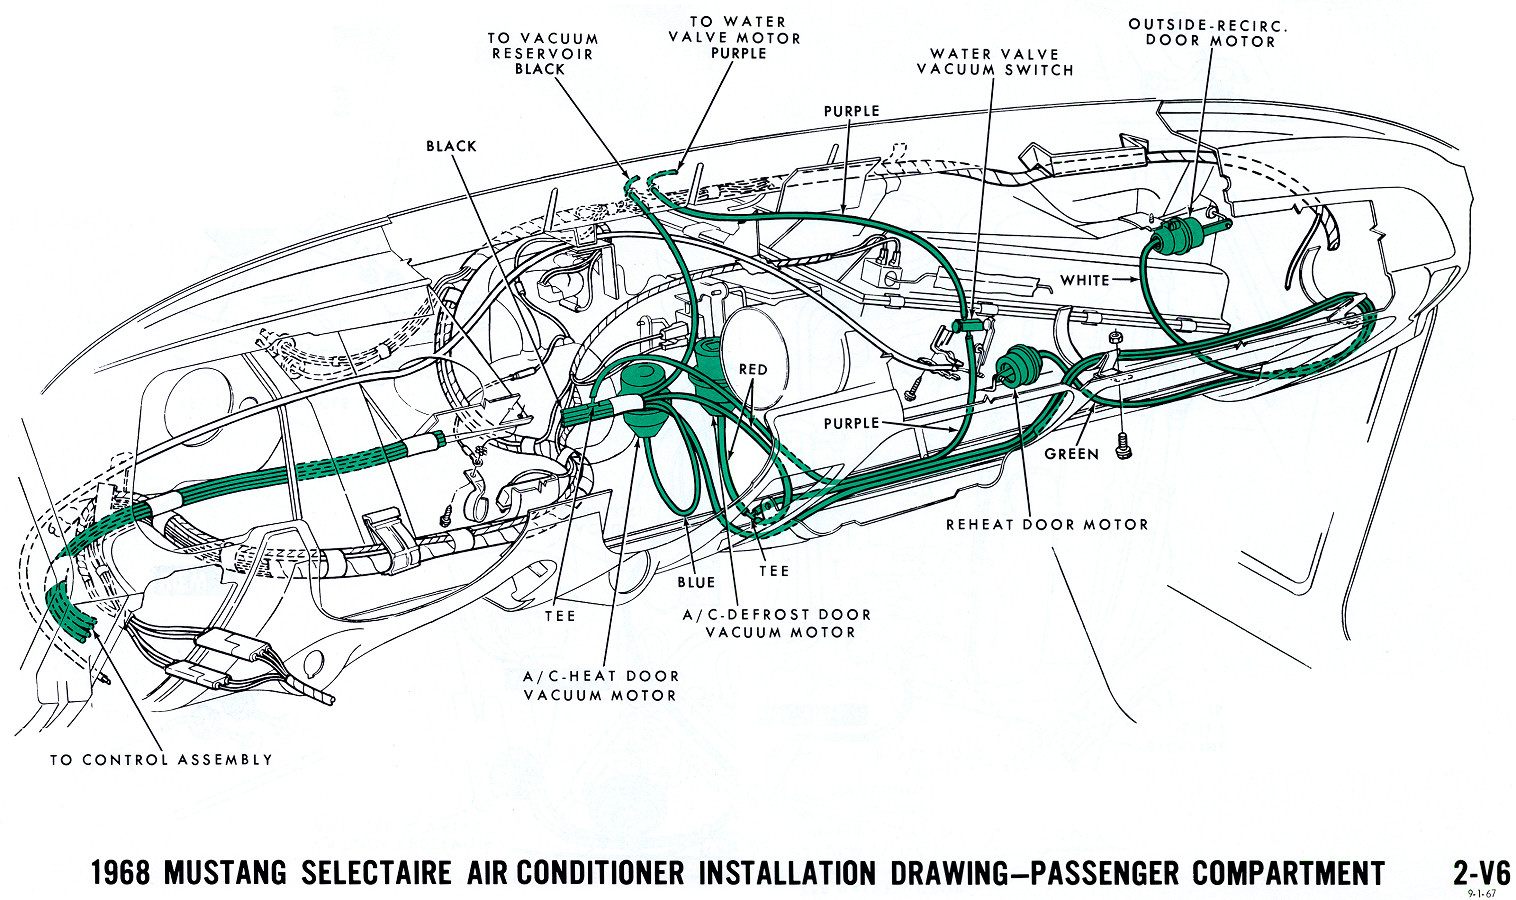 1968 mustang vacuum diagram air conditioning interior 1968 mustang wiring diagrams and vacuum schematics average joe 1967 Mustang Wiring Schematic at alyssarenee.co